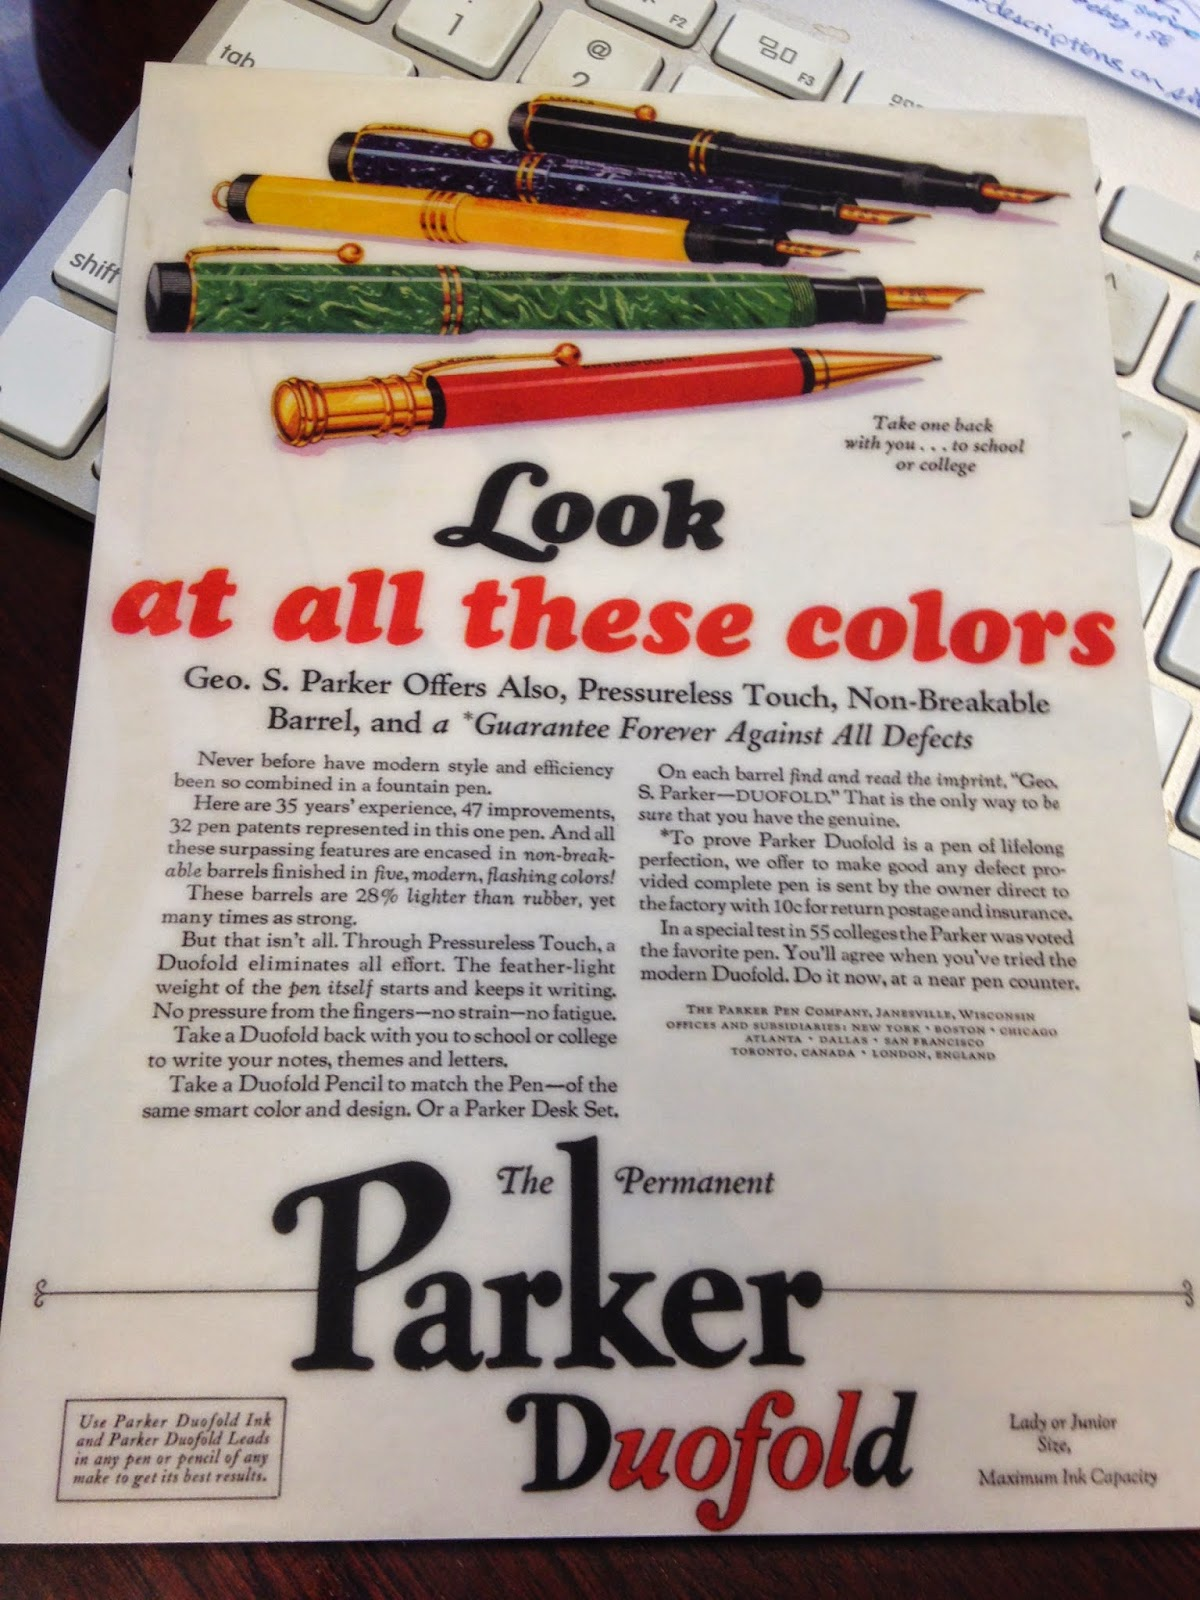 Parker Revives Historical Colors of Duofold